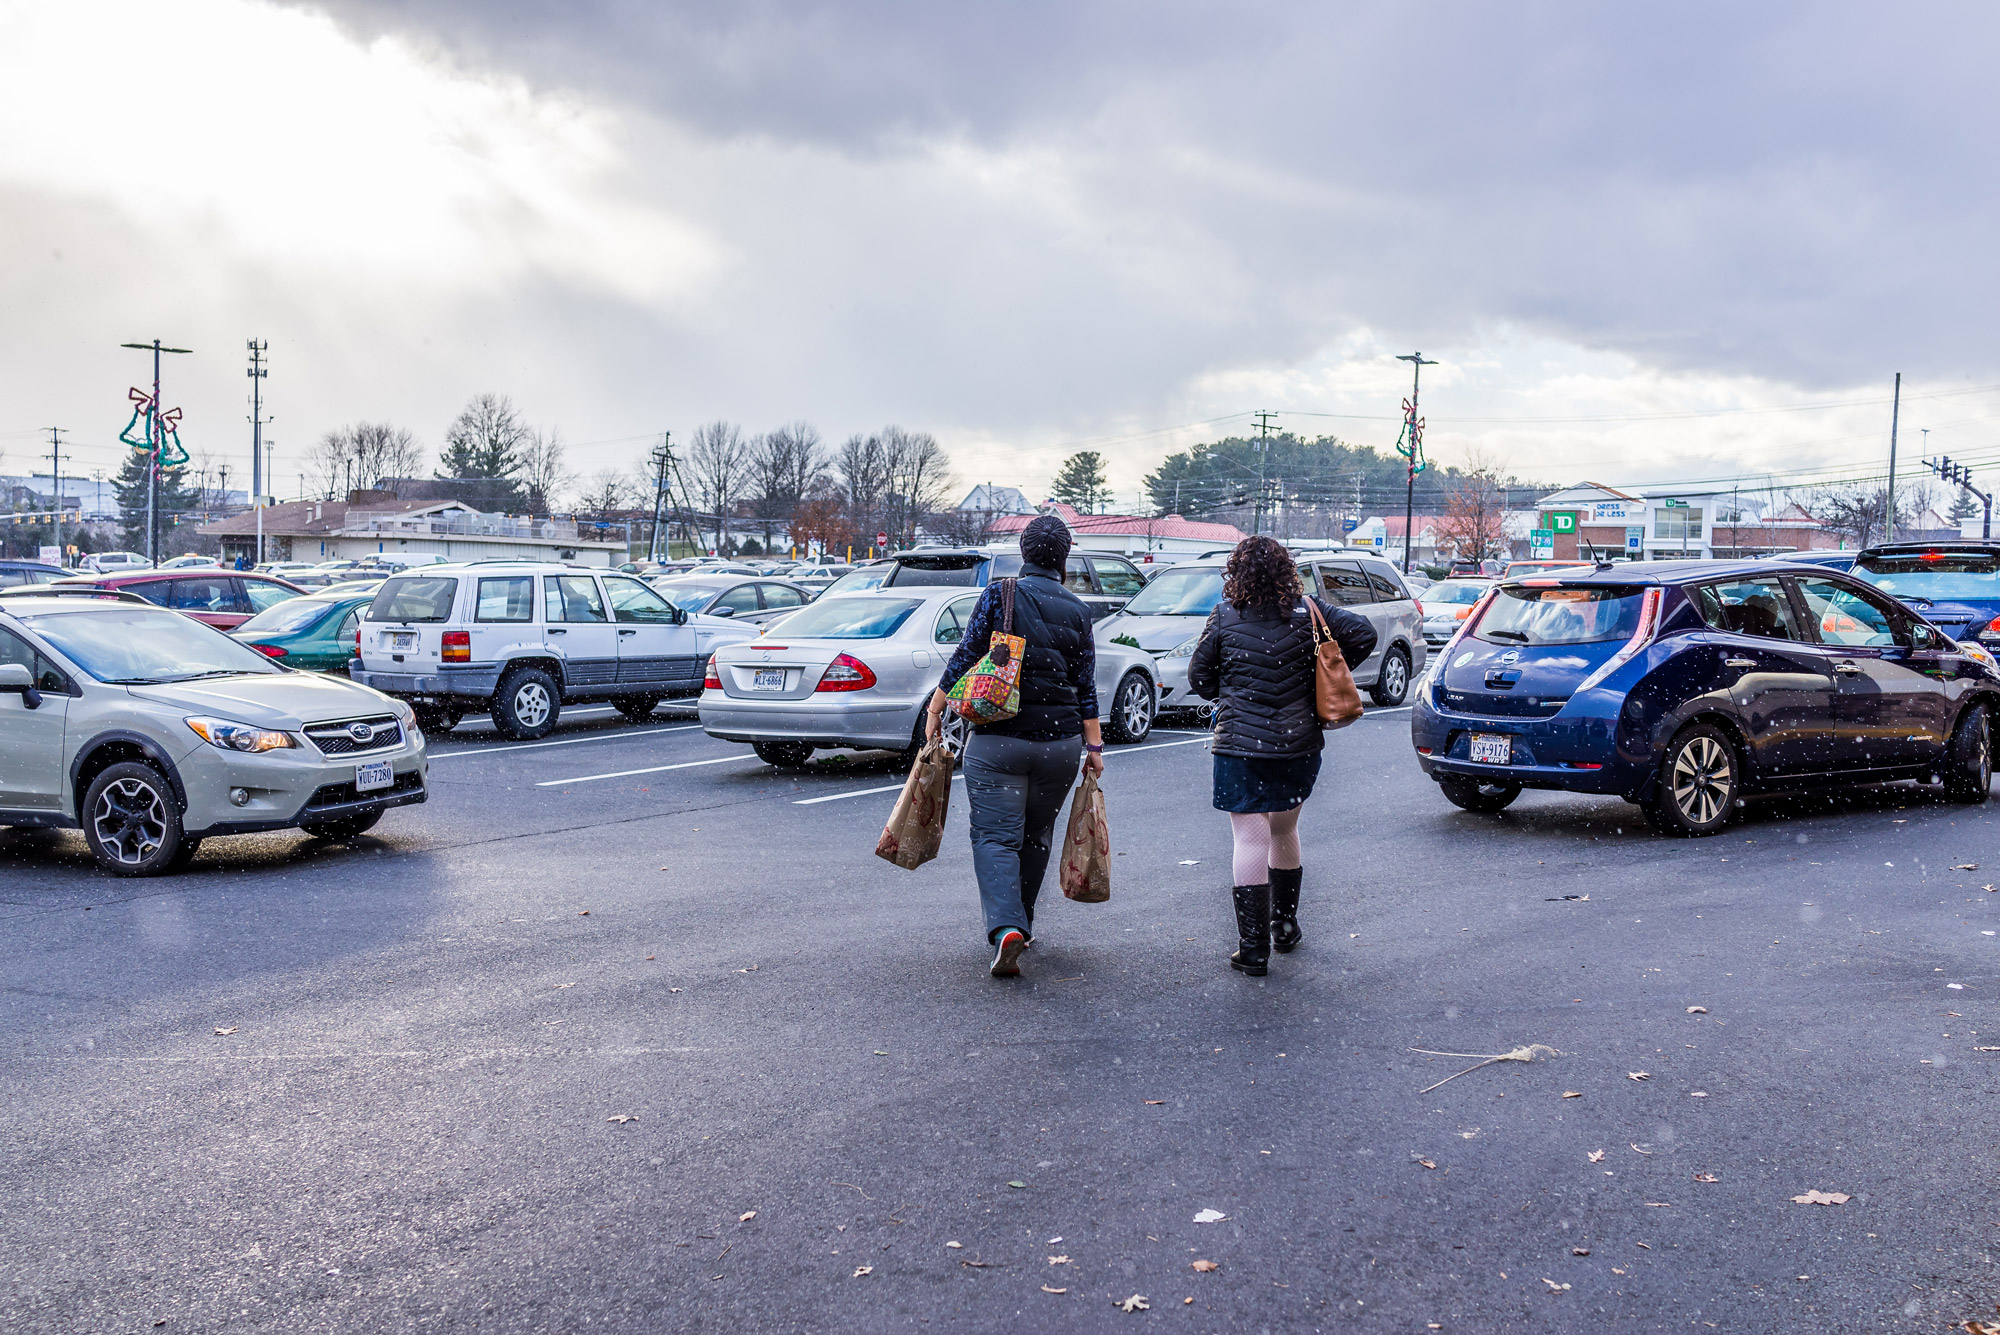 Two women walk through a crowded parking lot while it is snowing